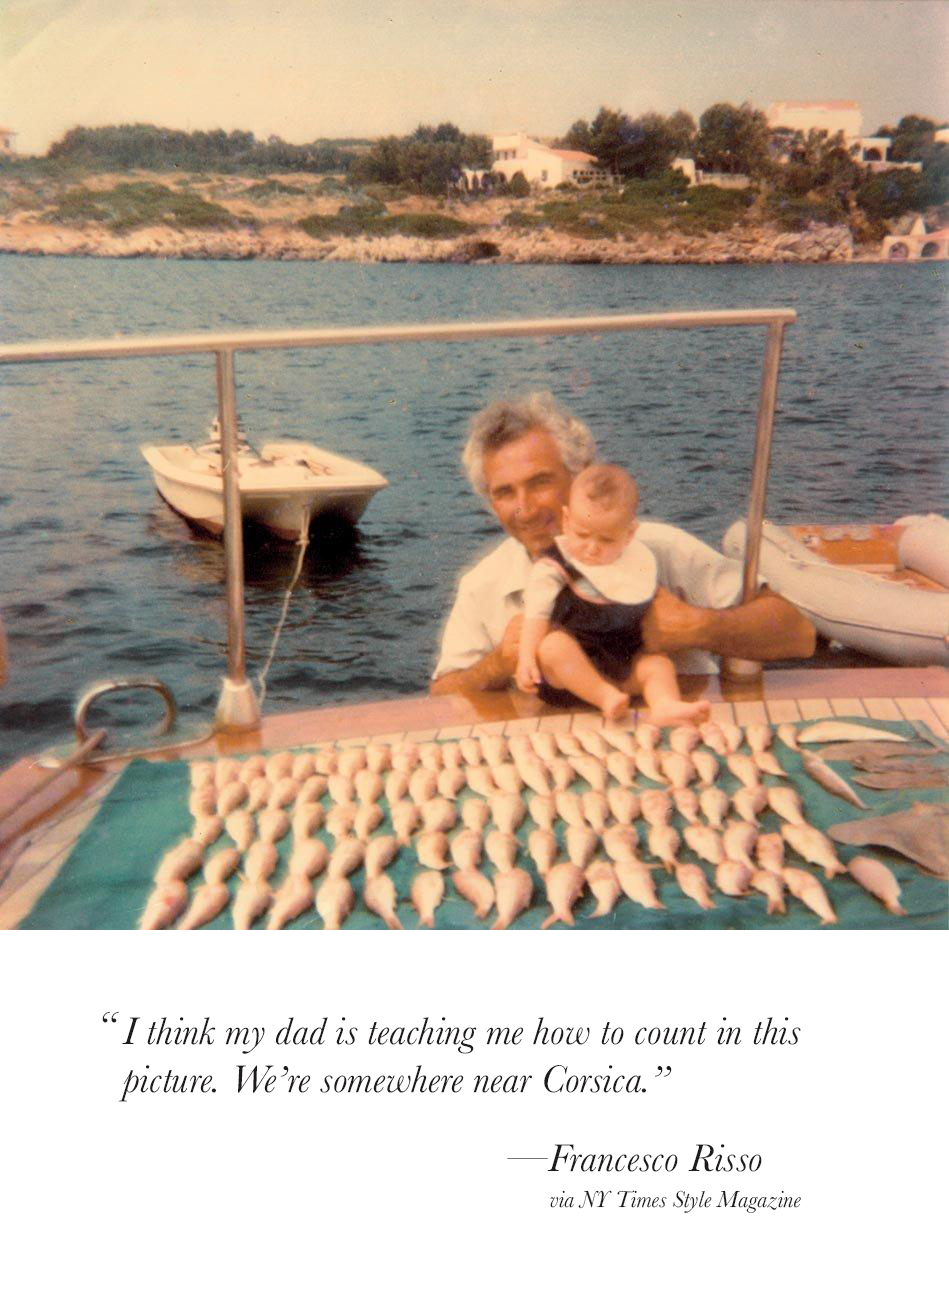 Francesco Risso on a Boat with his Father